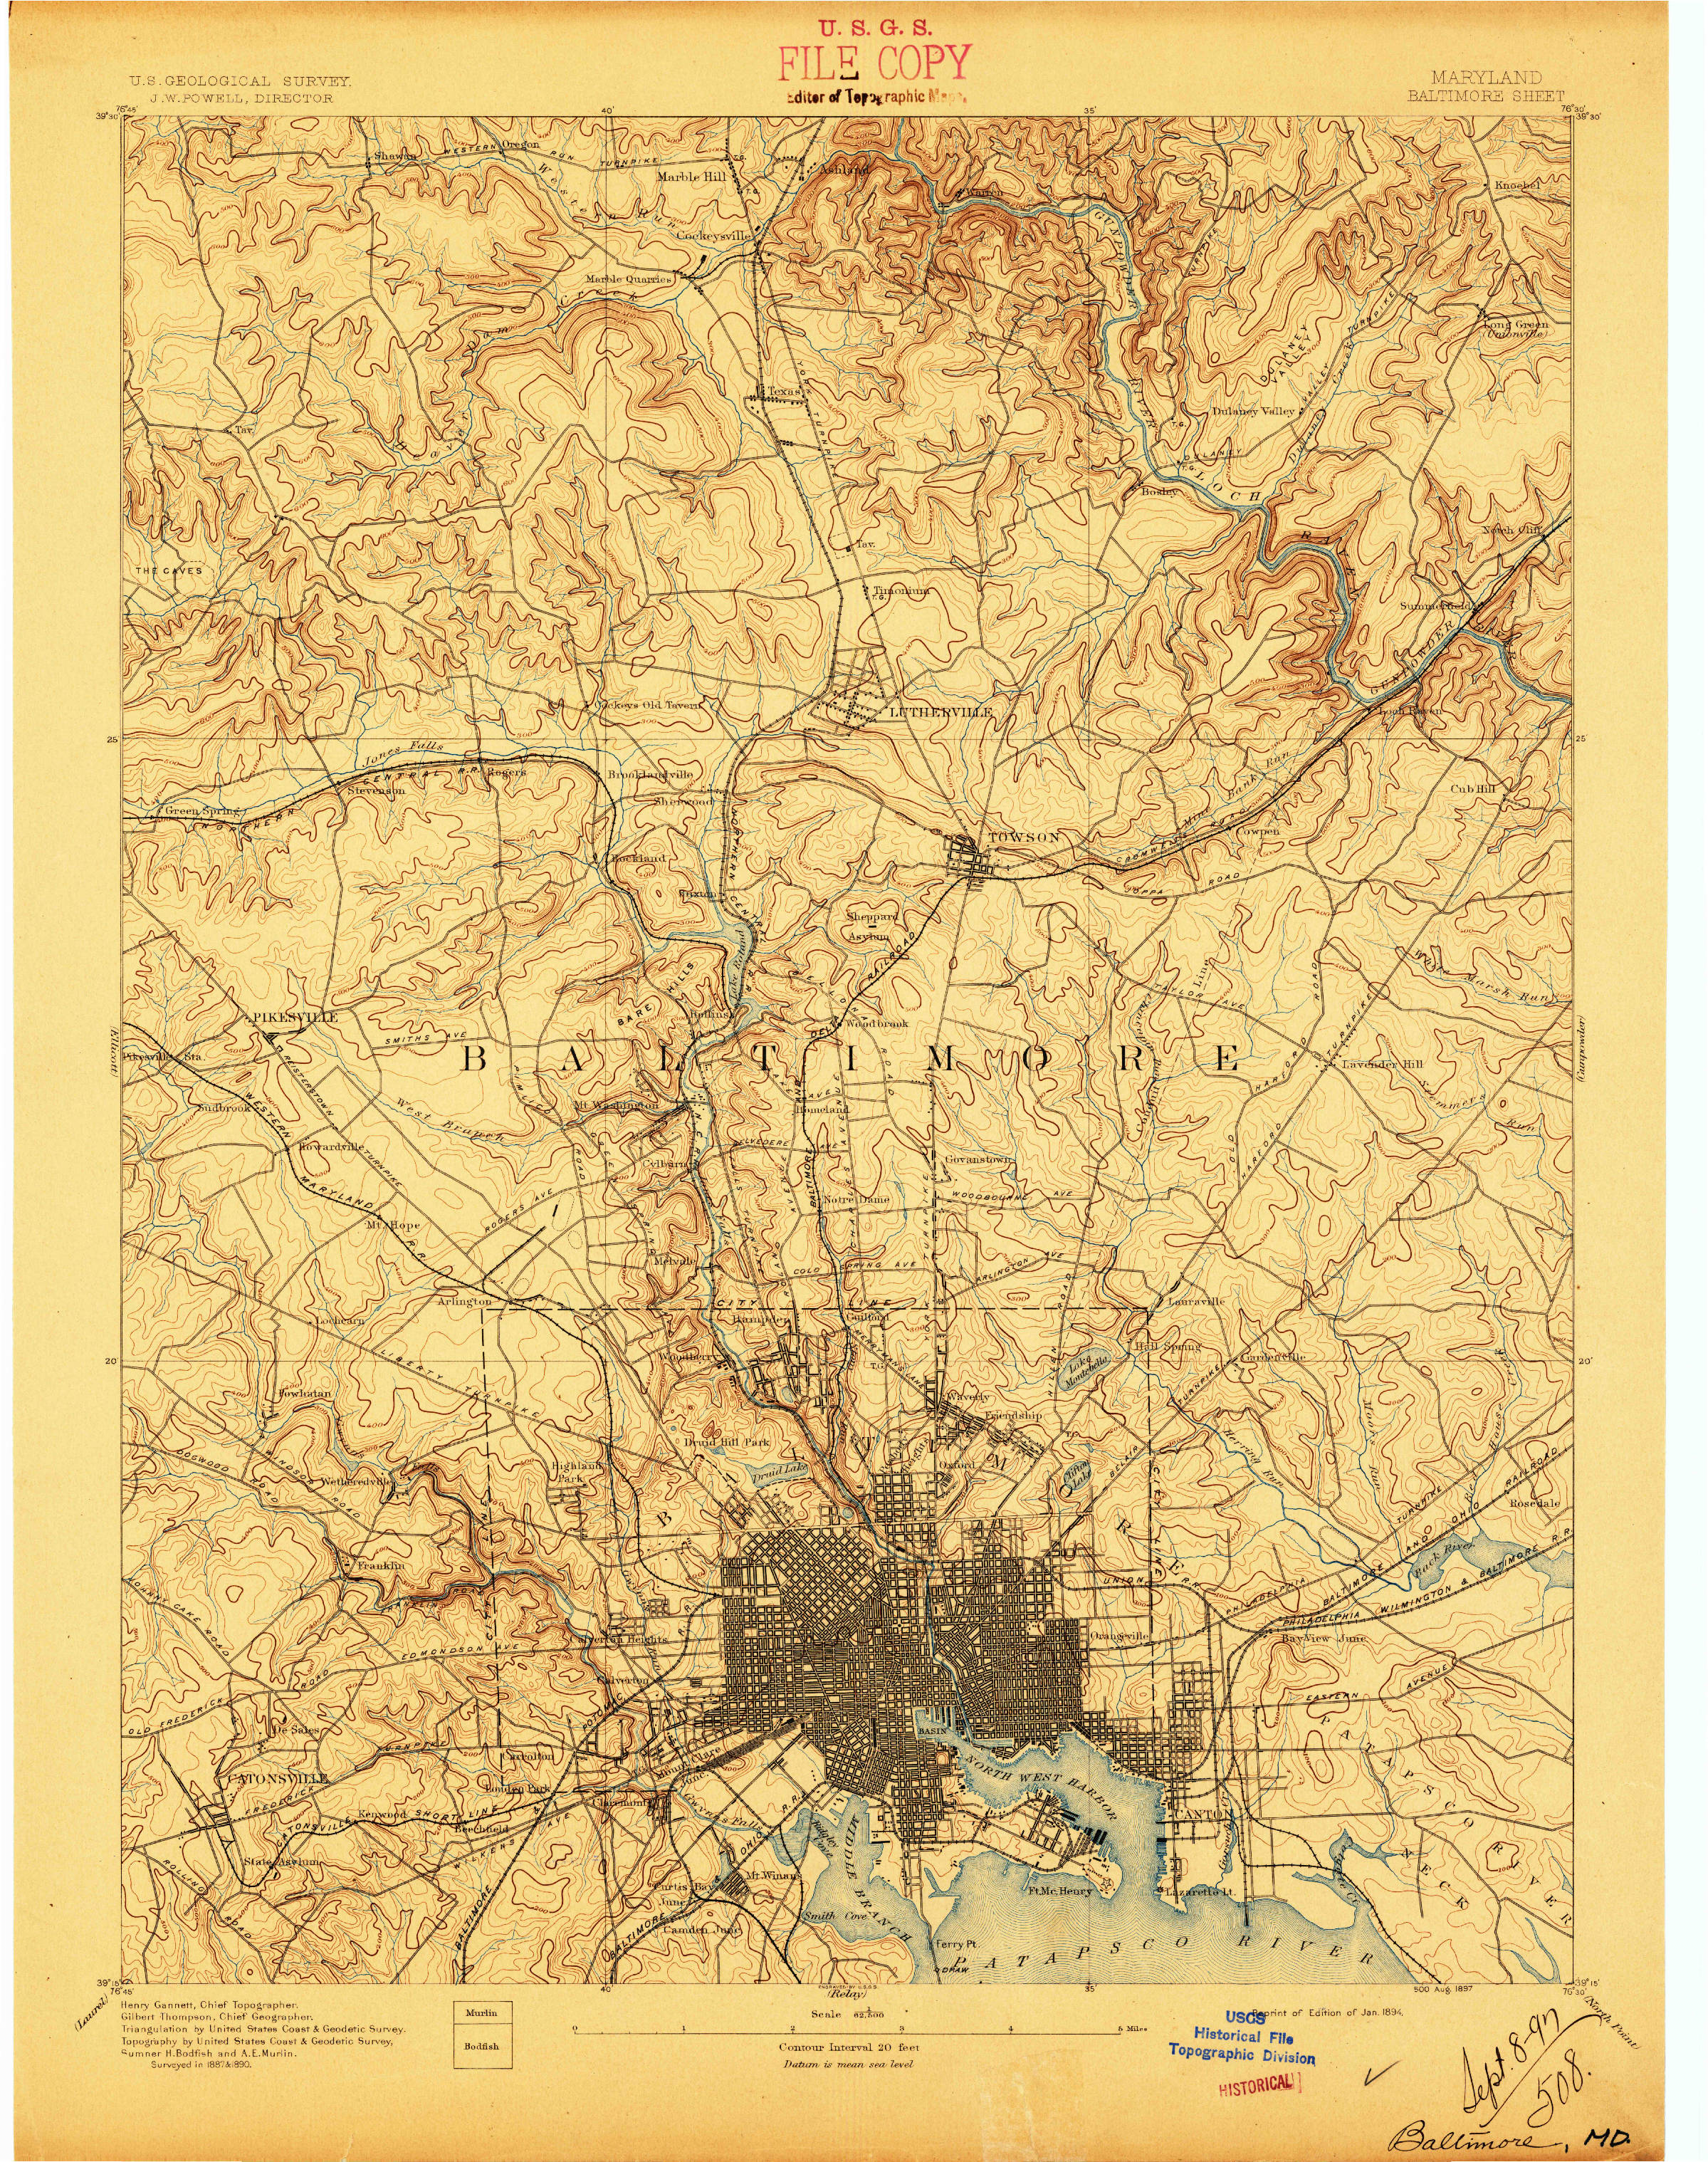 1894 Map of Baltimore